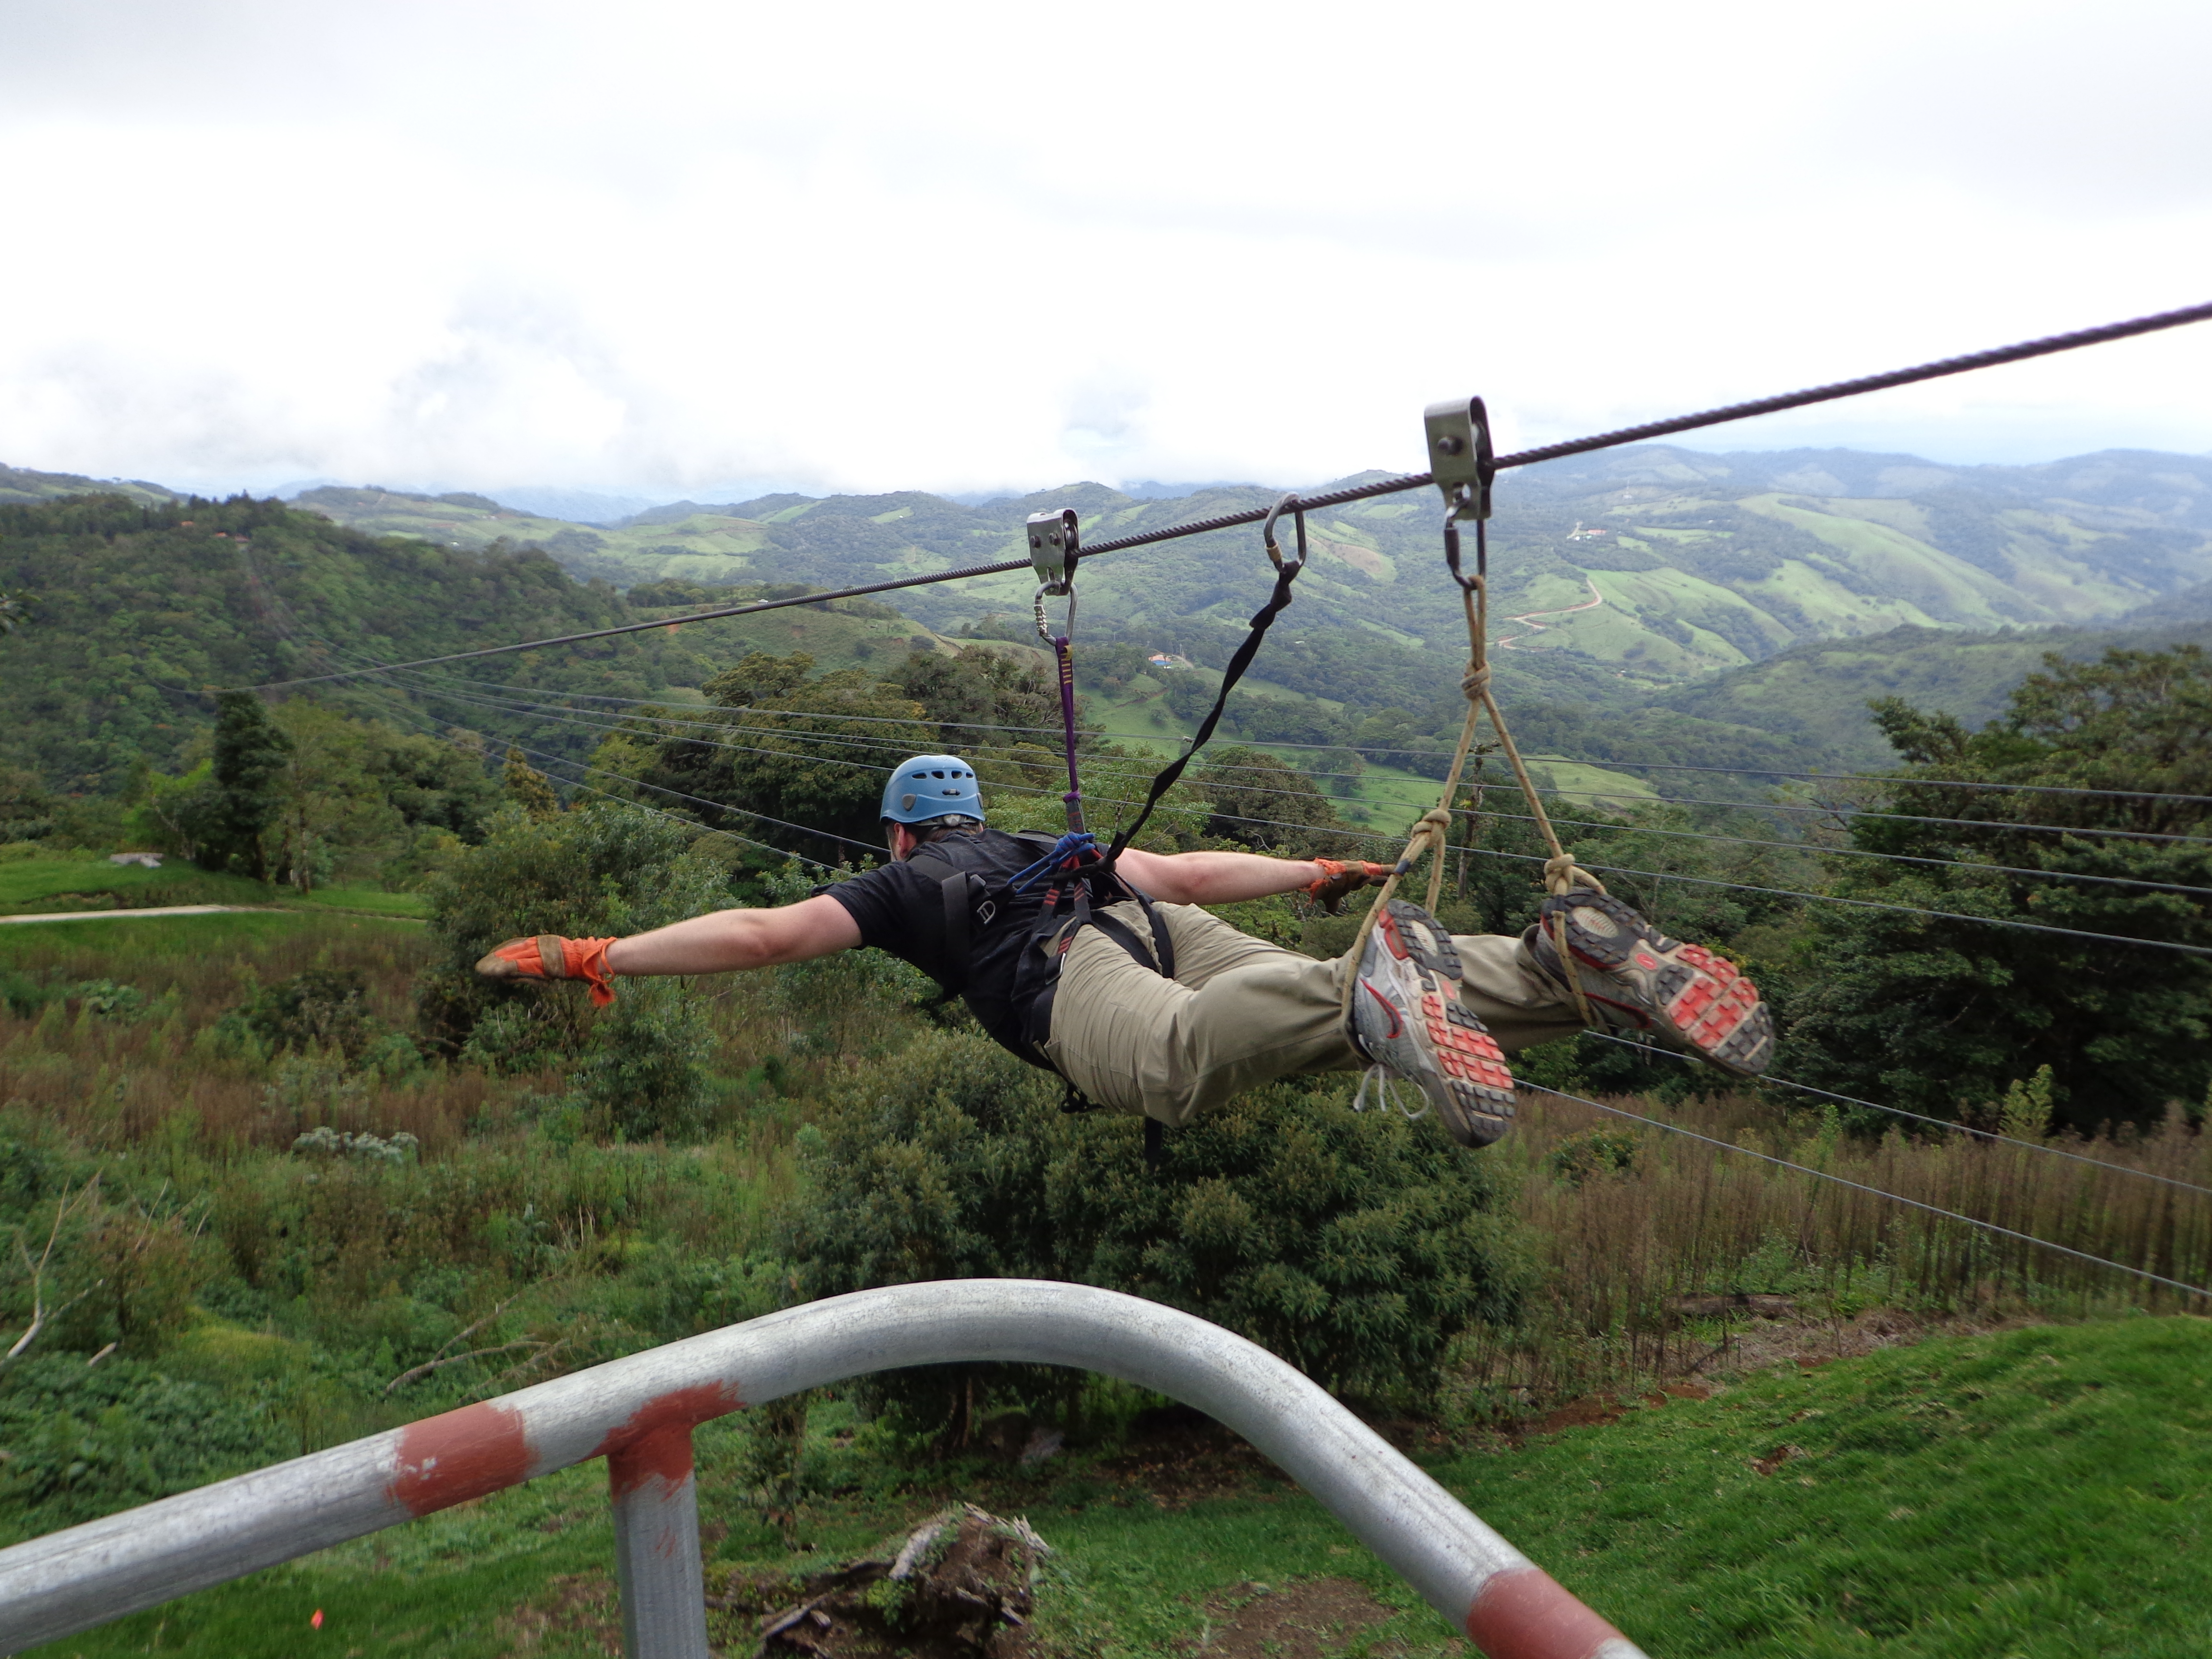 July 2013 The u0027Supermanu0027. (Monteverde Costa Rica) & Monteverde: Canopy and Wilderness Experience u2013 Planes Trains ...